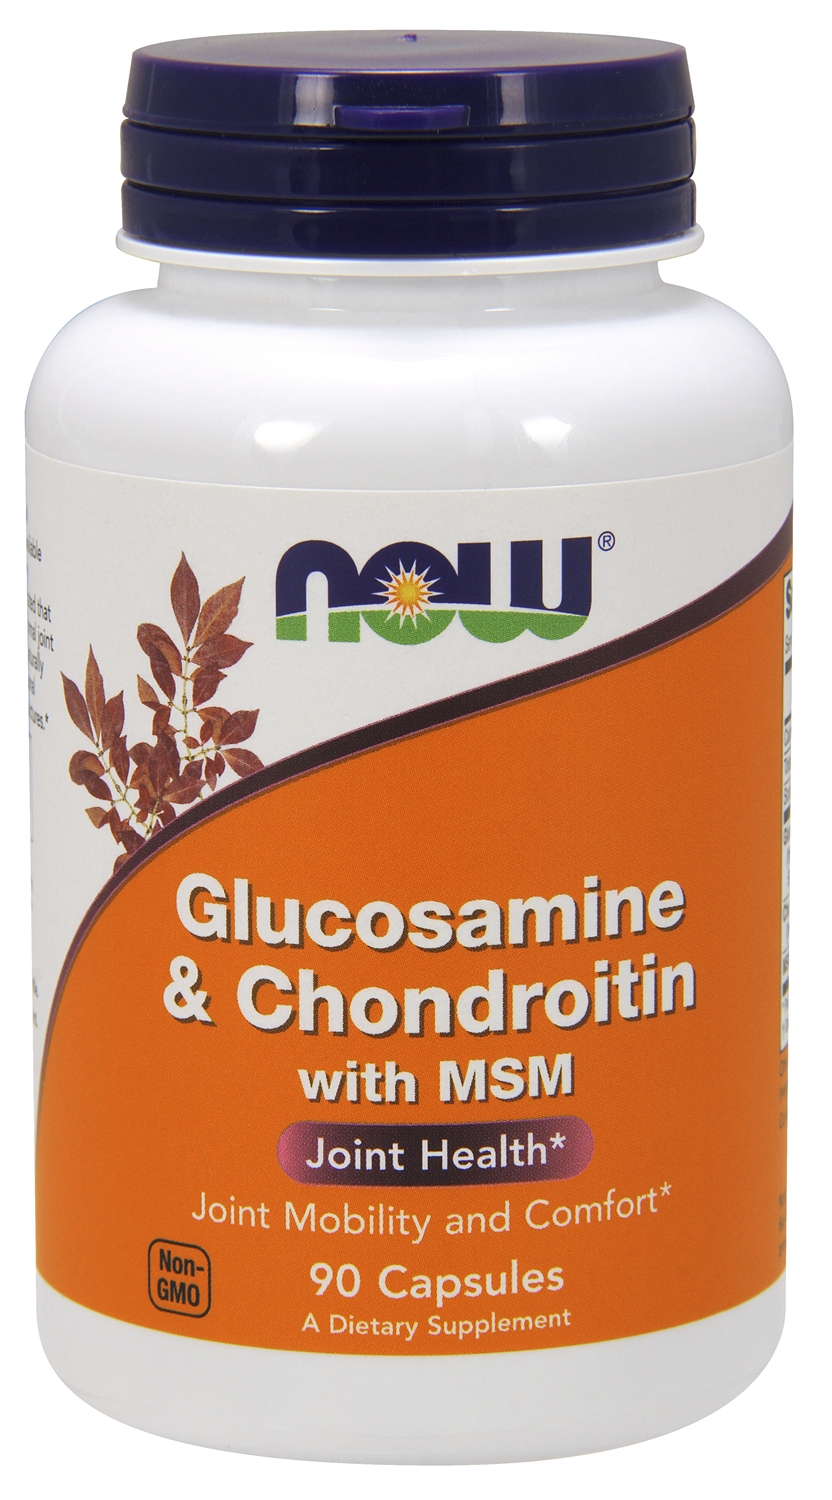 Glucosamine & Chondroitin with MSM 90 caps by NOW